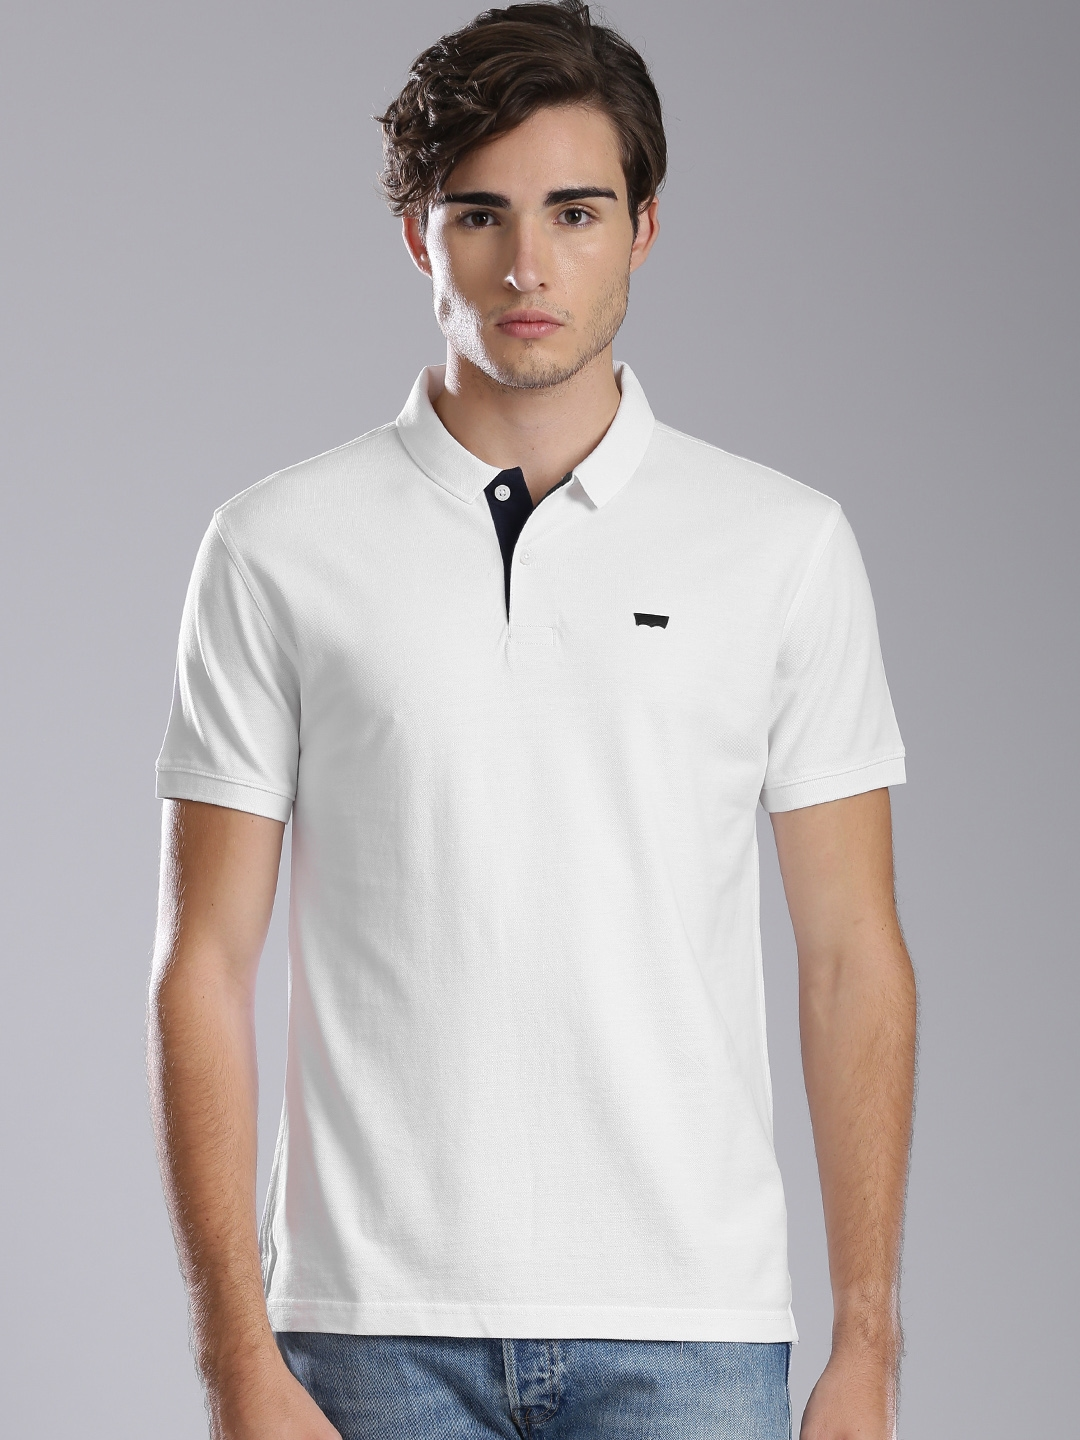 ab2835b2 Buy Levis Men White Solid Polo T Shirt - Tshirts for Men 1833029 ...